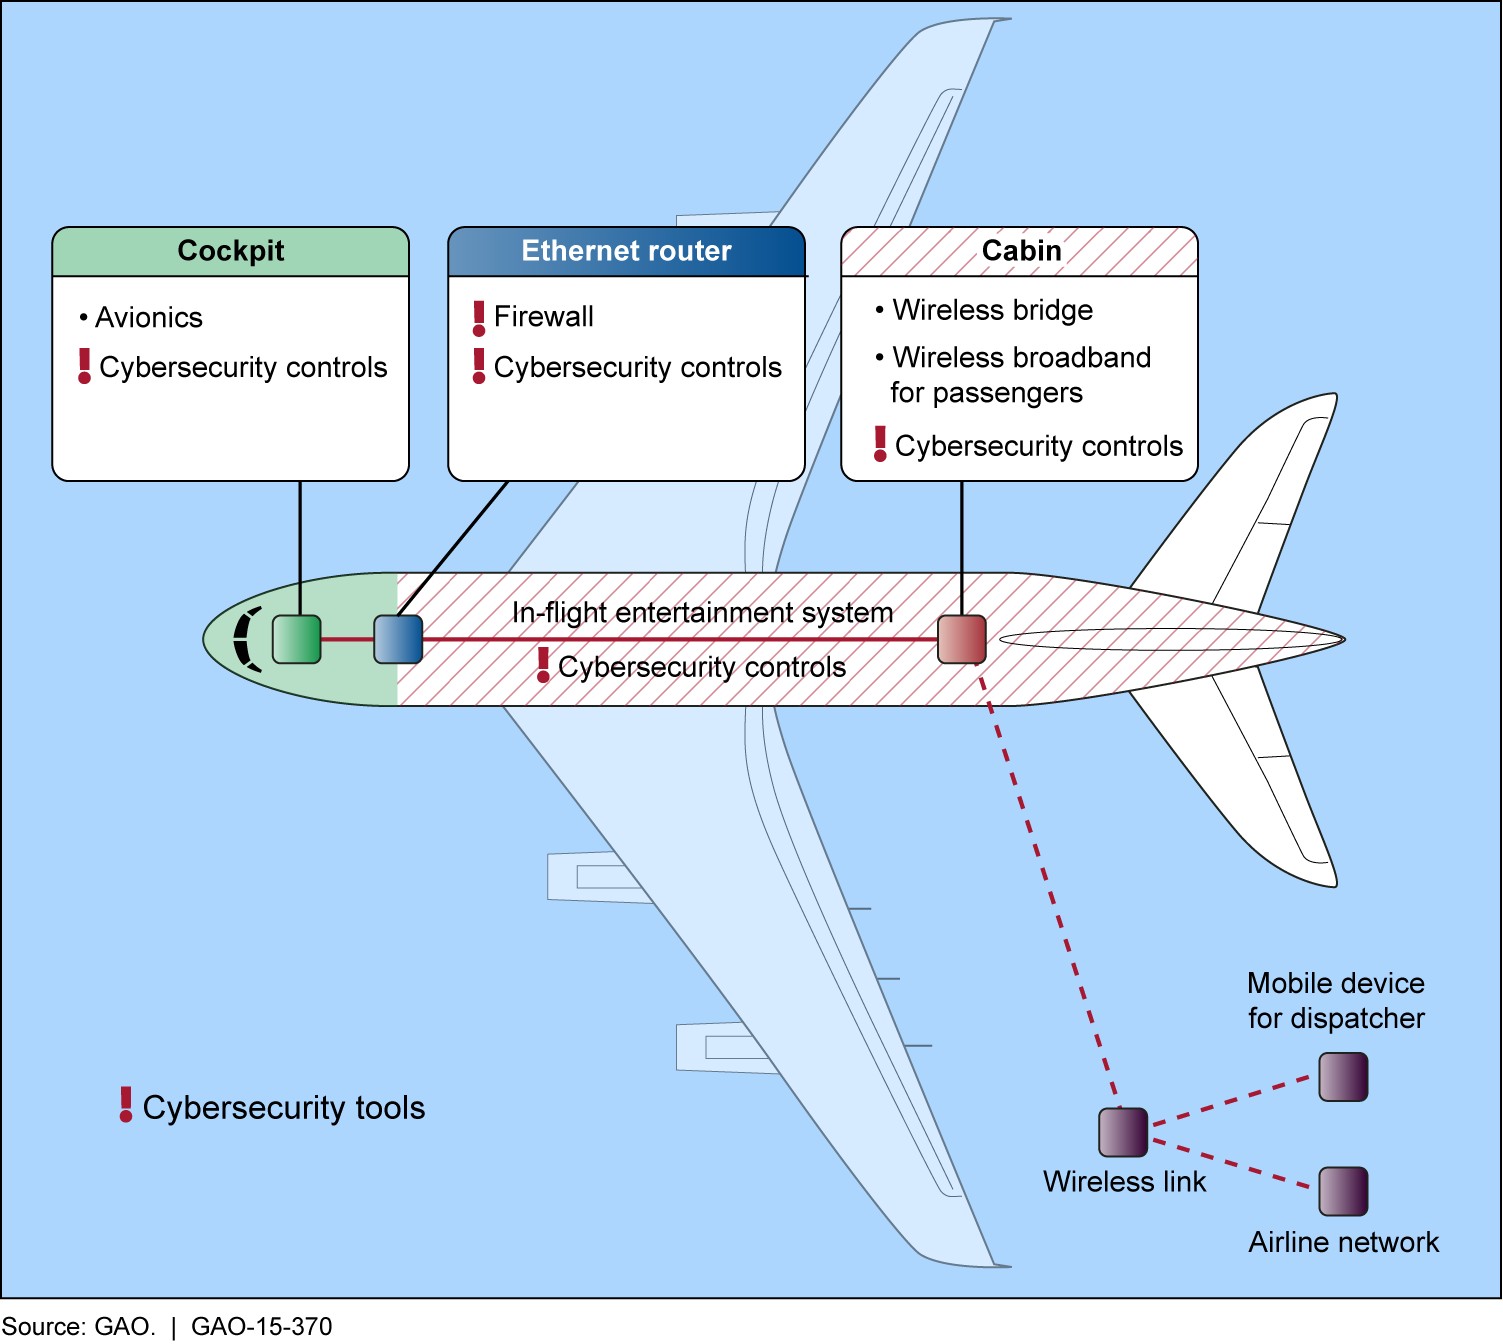 Figure 4: Aircraft Diagram Showing Internet Protocol Connectivity Inside and Outside of Aircraft FAA officials and experts we interviewed said that modern aircraft are also increasingly connected to